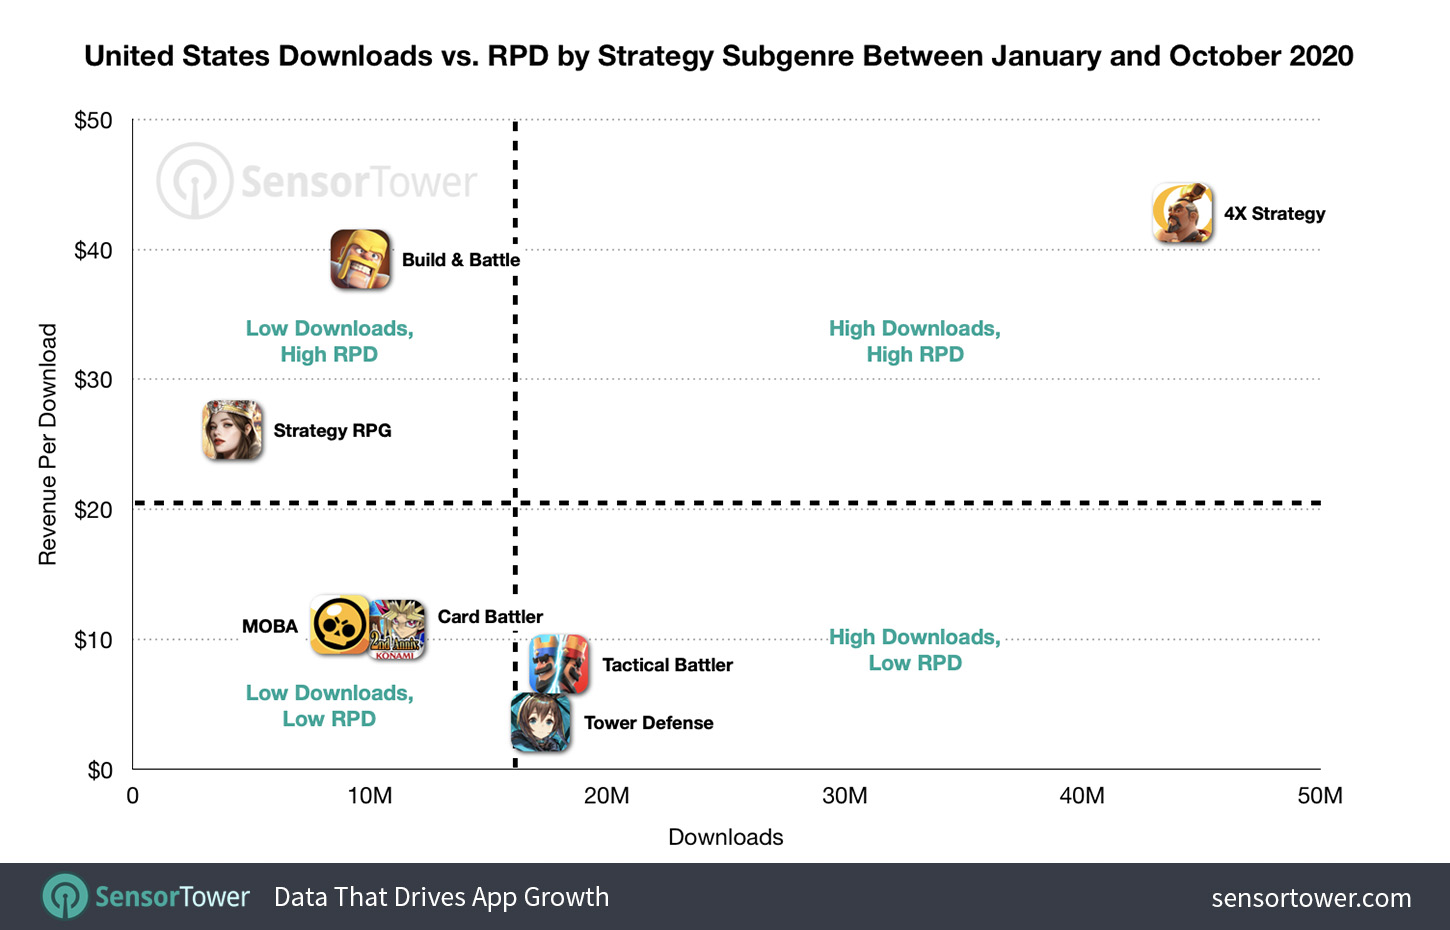 U.S. Downloads Vs. RPD by Strategy Subgenre Between January and October 2020